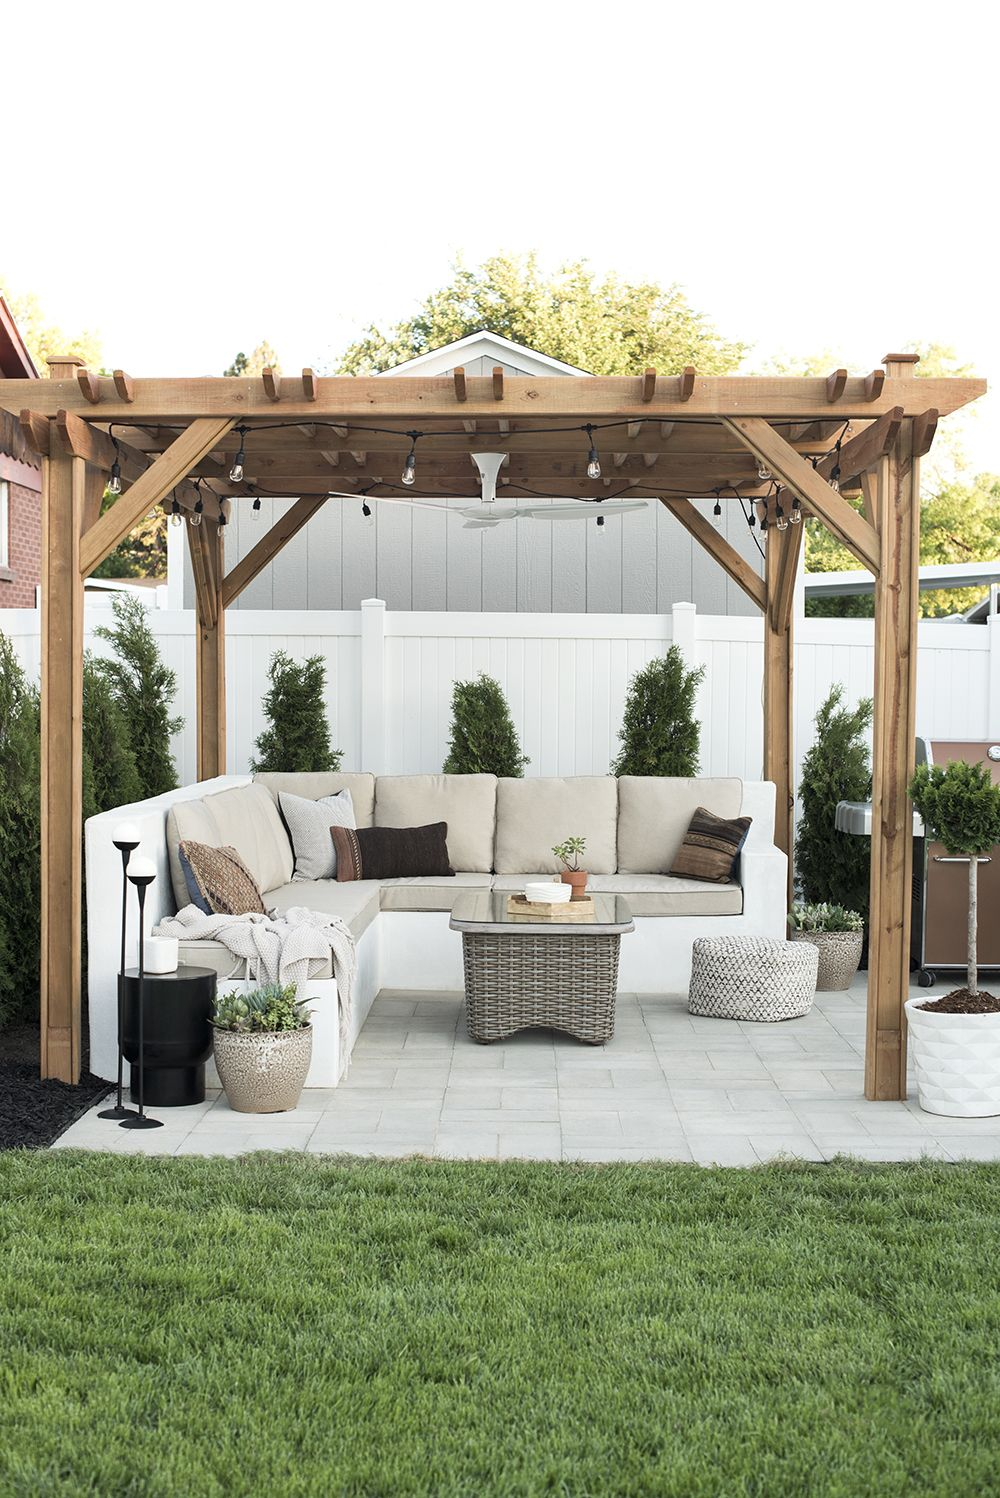 Our Backyard Reveal & Get the Look - Room for Tuesday